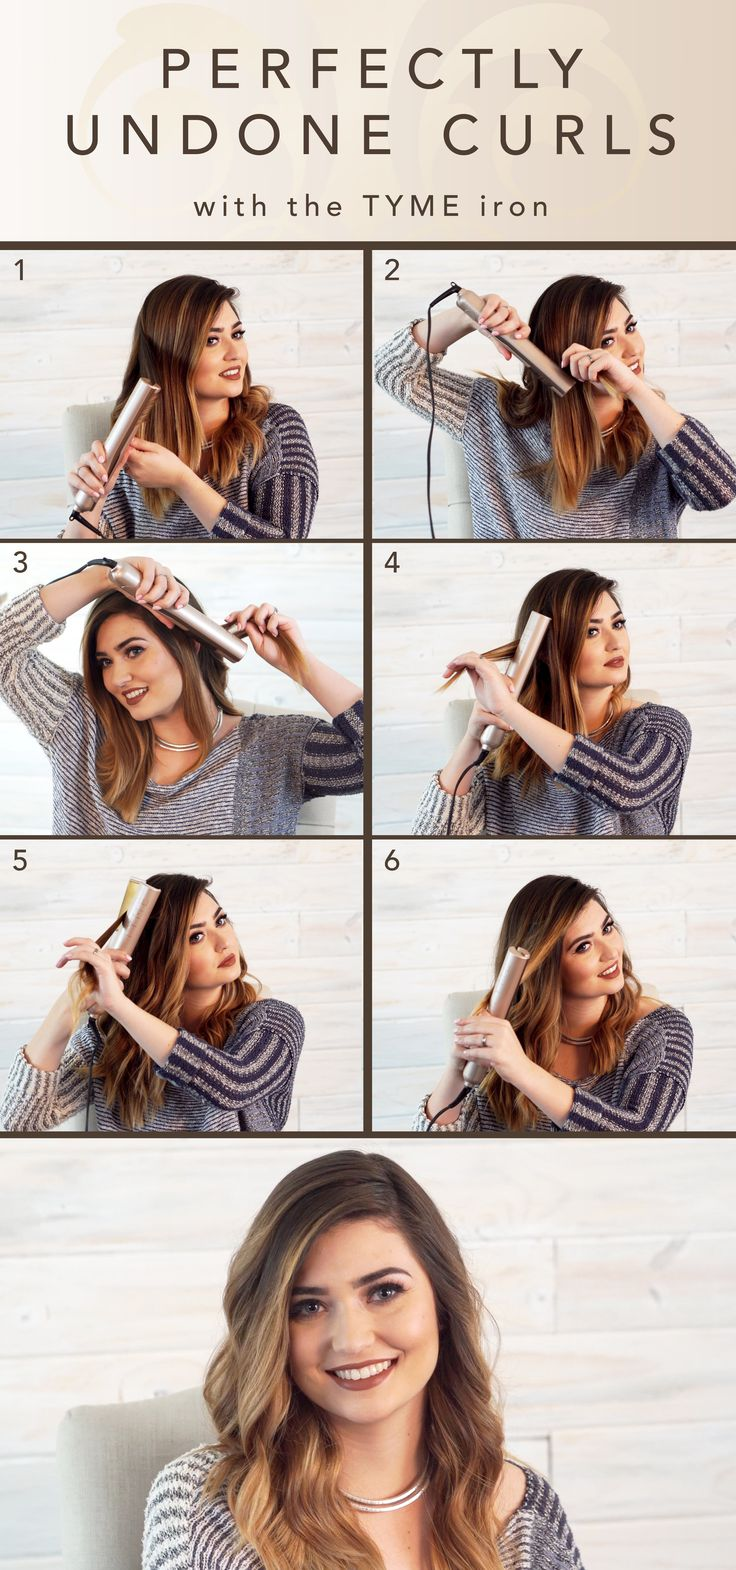 Perfectly Undone Curls is the look of the season! Learn how you can create this style in only a few minutes at WWW.TYMESTYLE.COM